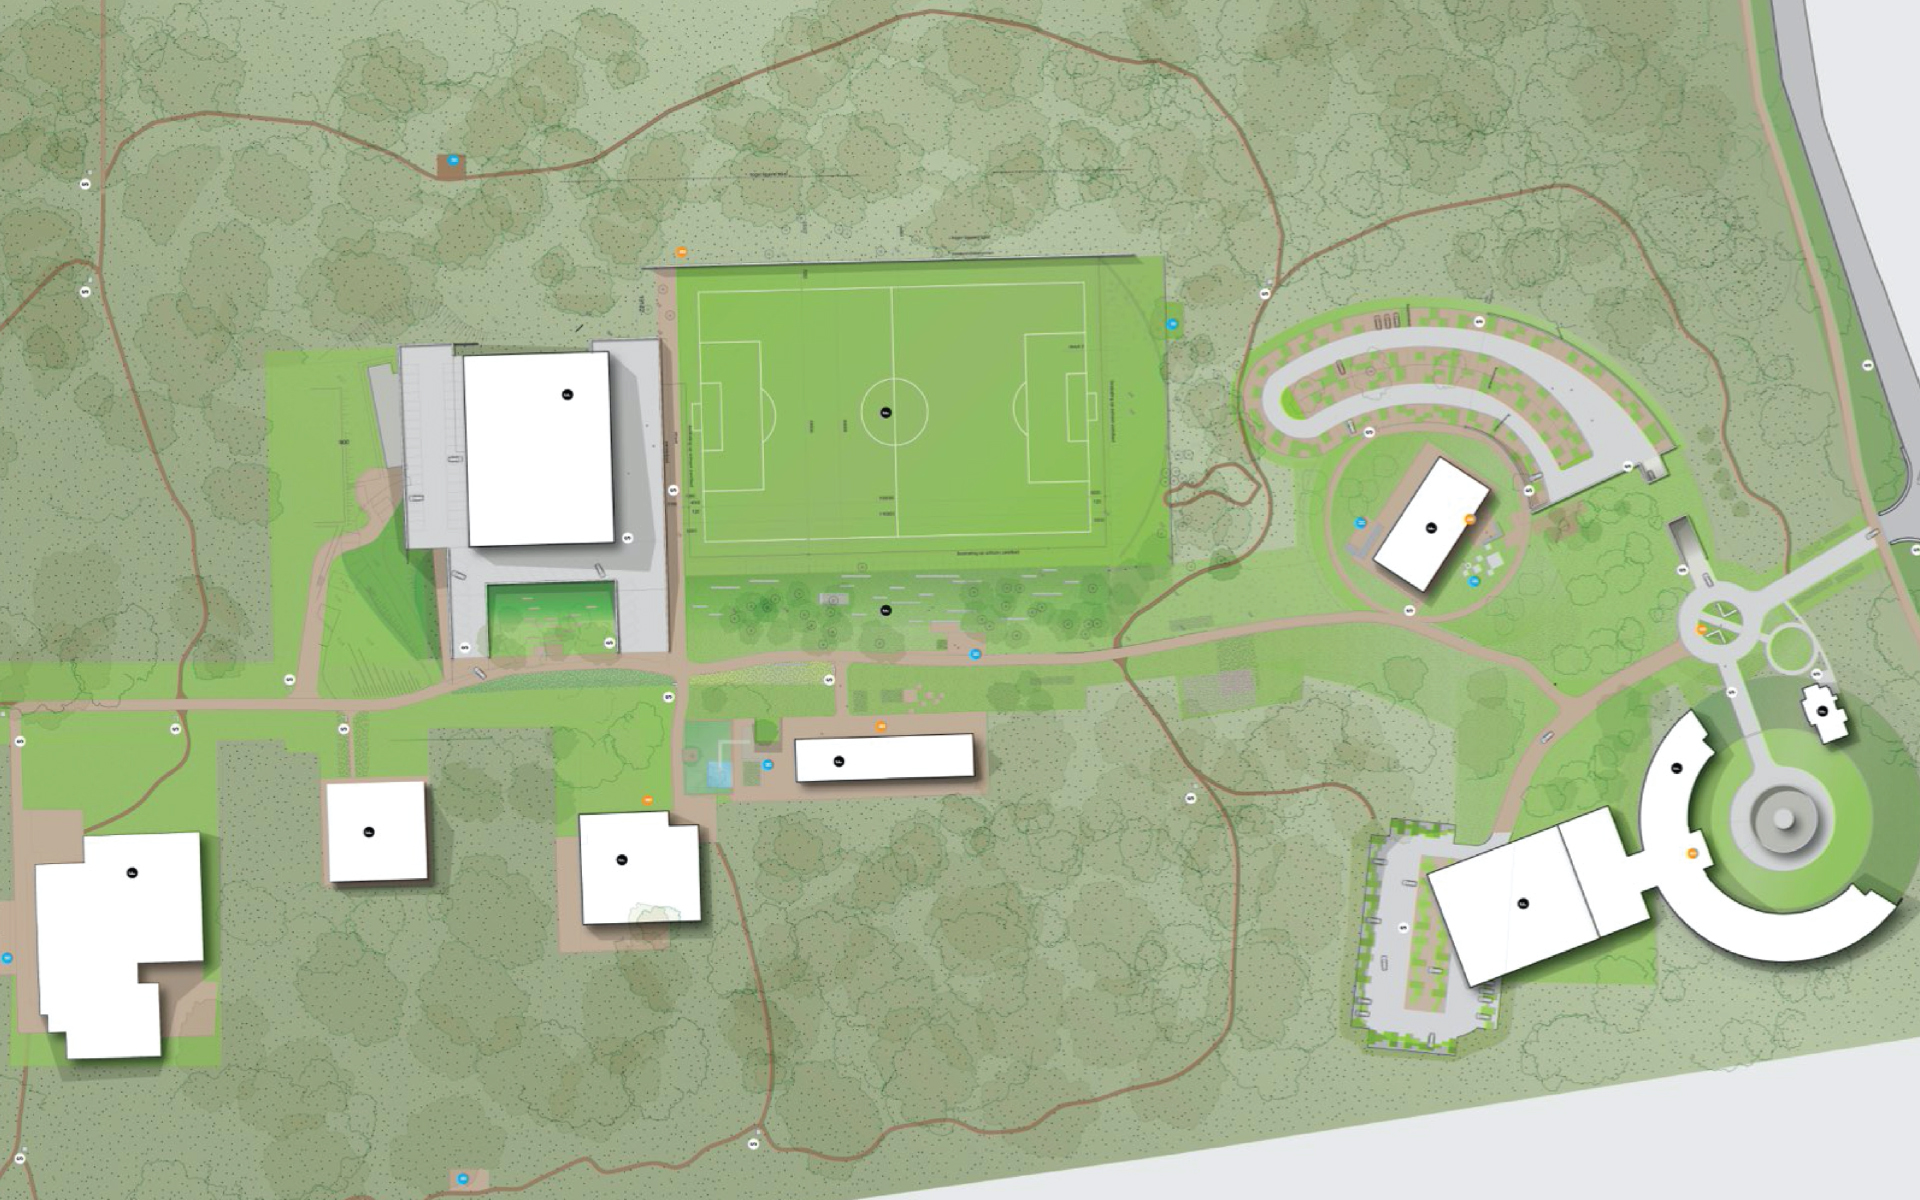 KNVB Campus Zeist DAY Creative map Vision on brand and experience